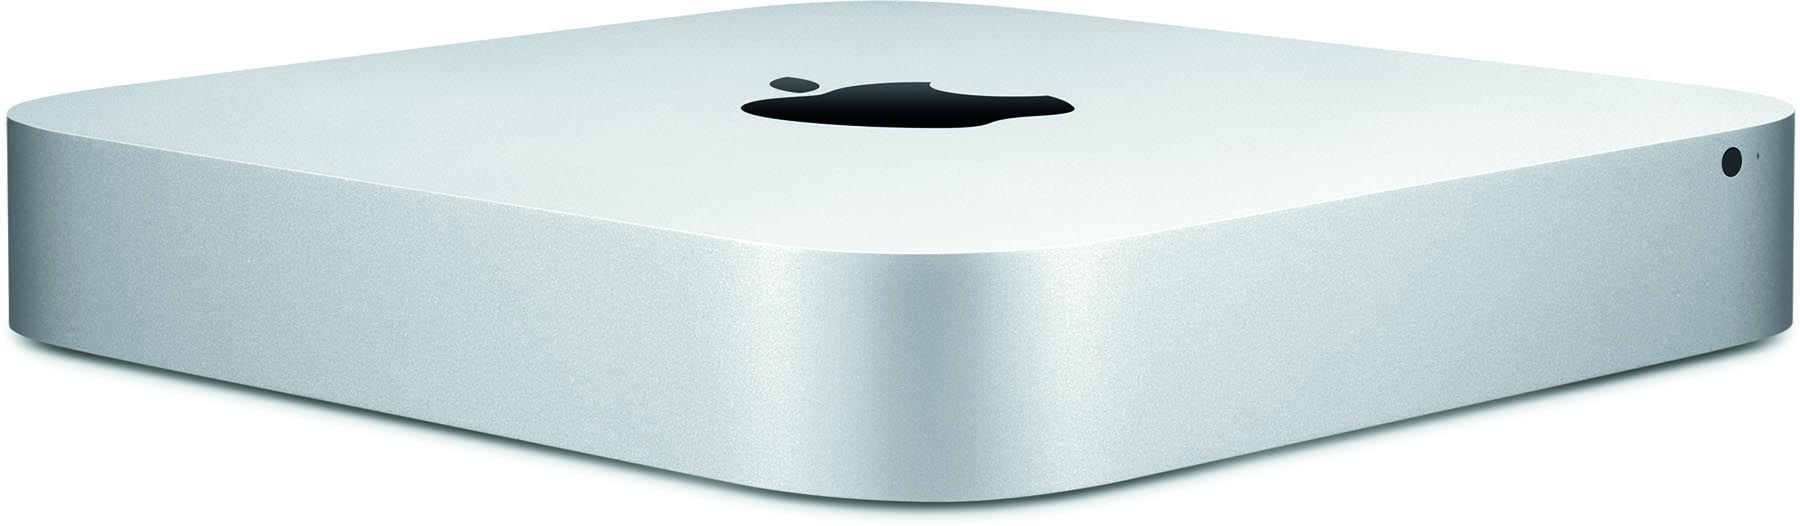 Photo Mac mini